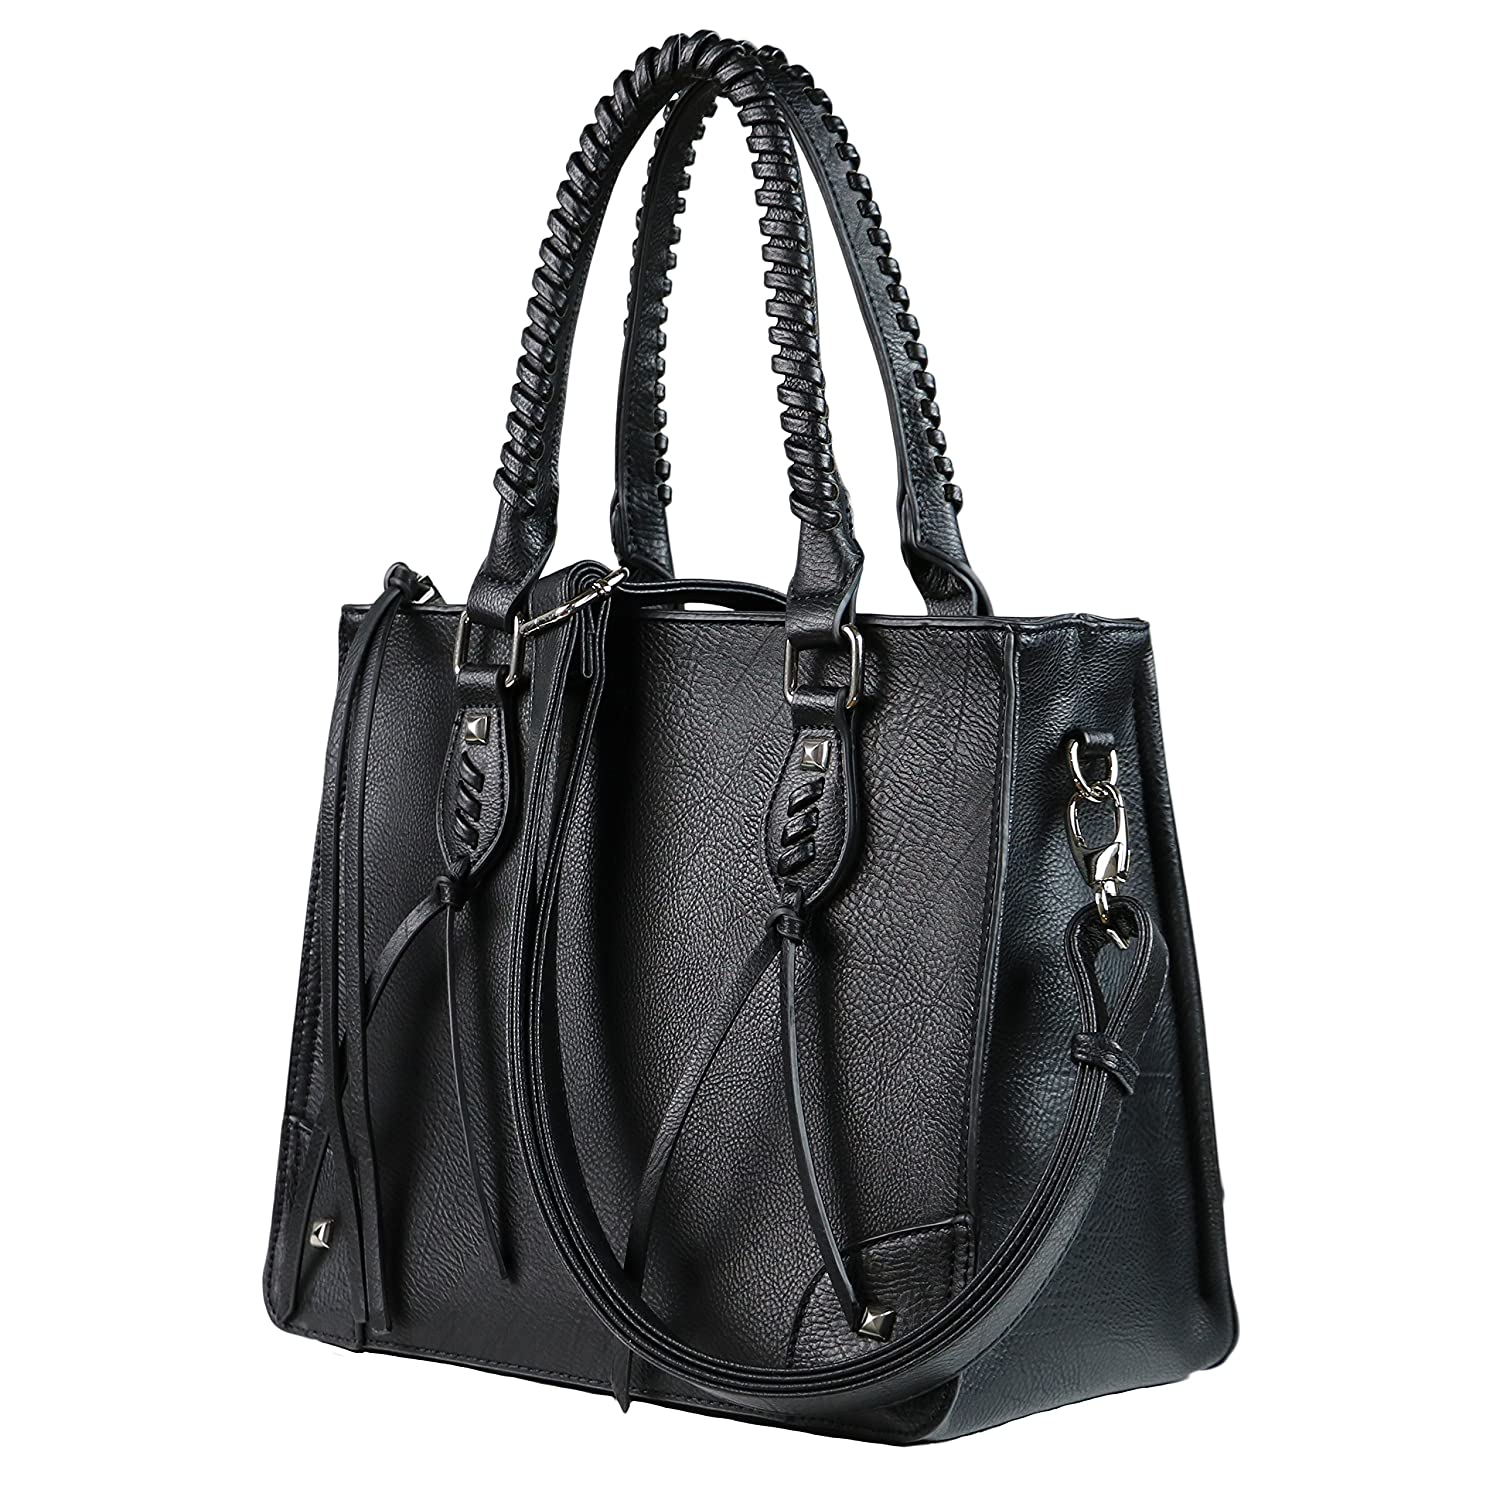 Concealed Carry Weapon Purse - YKK Locking Amy Studded Satchel by Lady  Conceal (Black)  Handbags  Amazon.com ce479736f435d